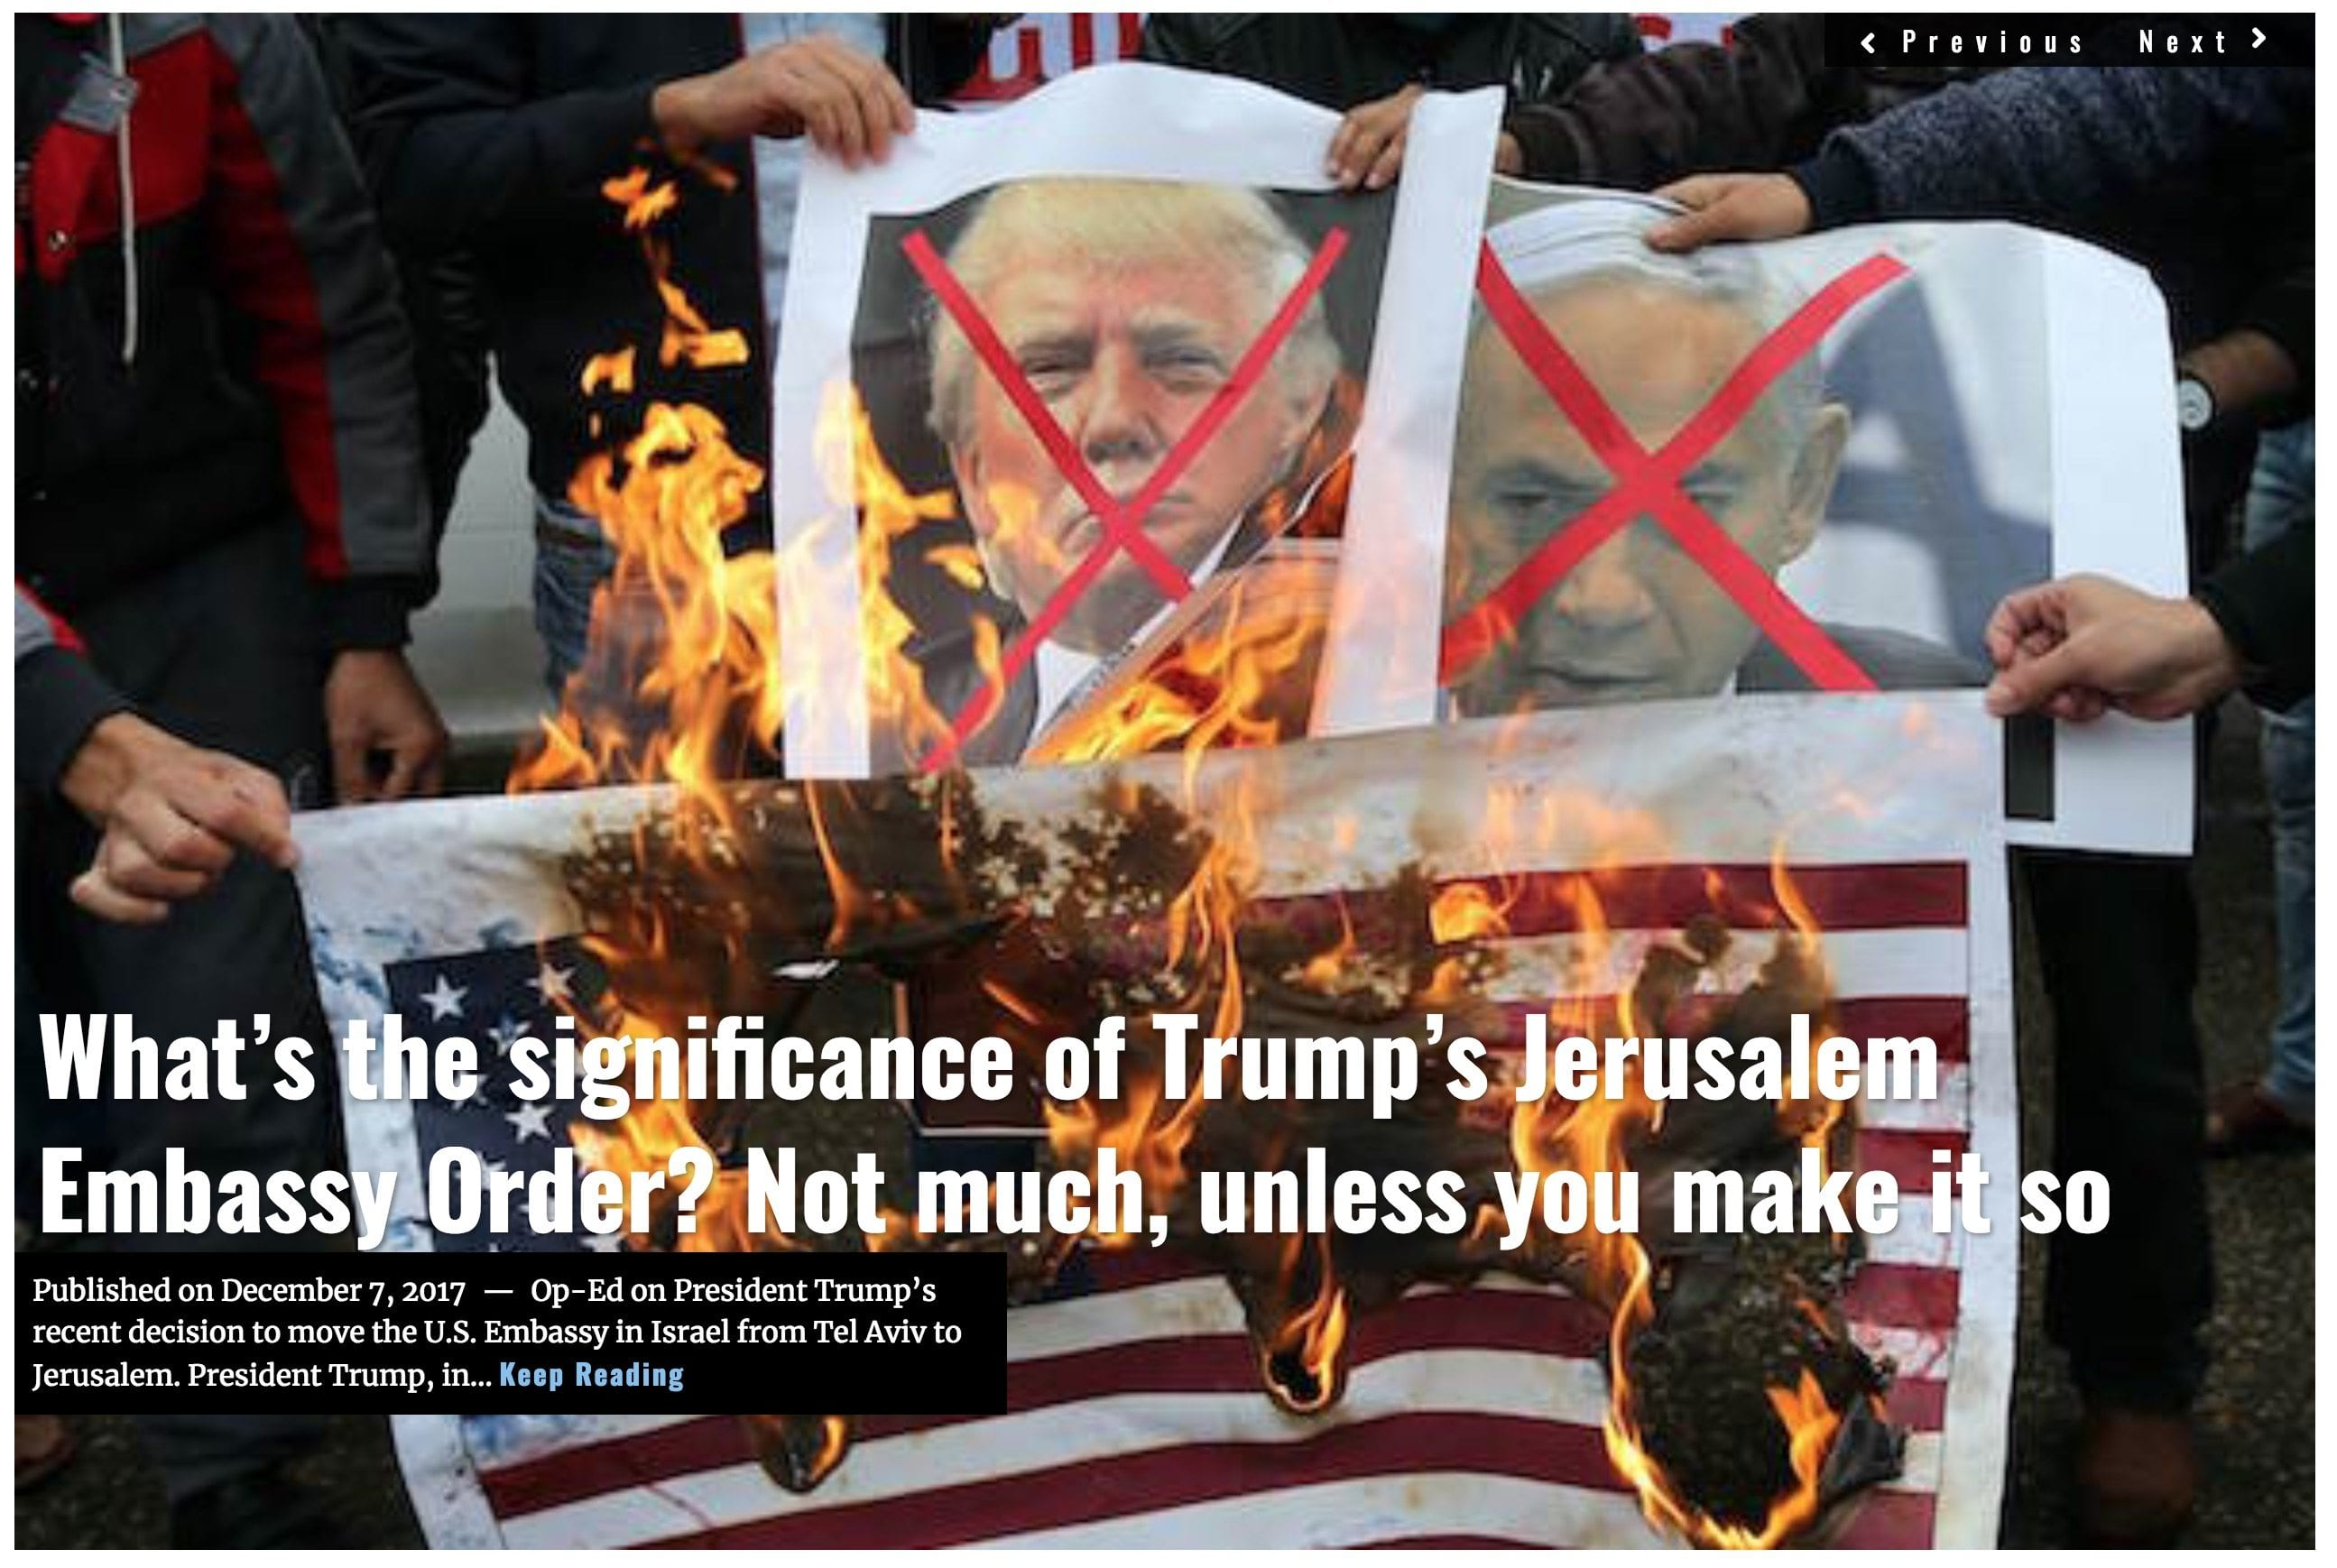 Image Lima Charlie News Headline Jerusalem Embassy D.Firester DEC7